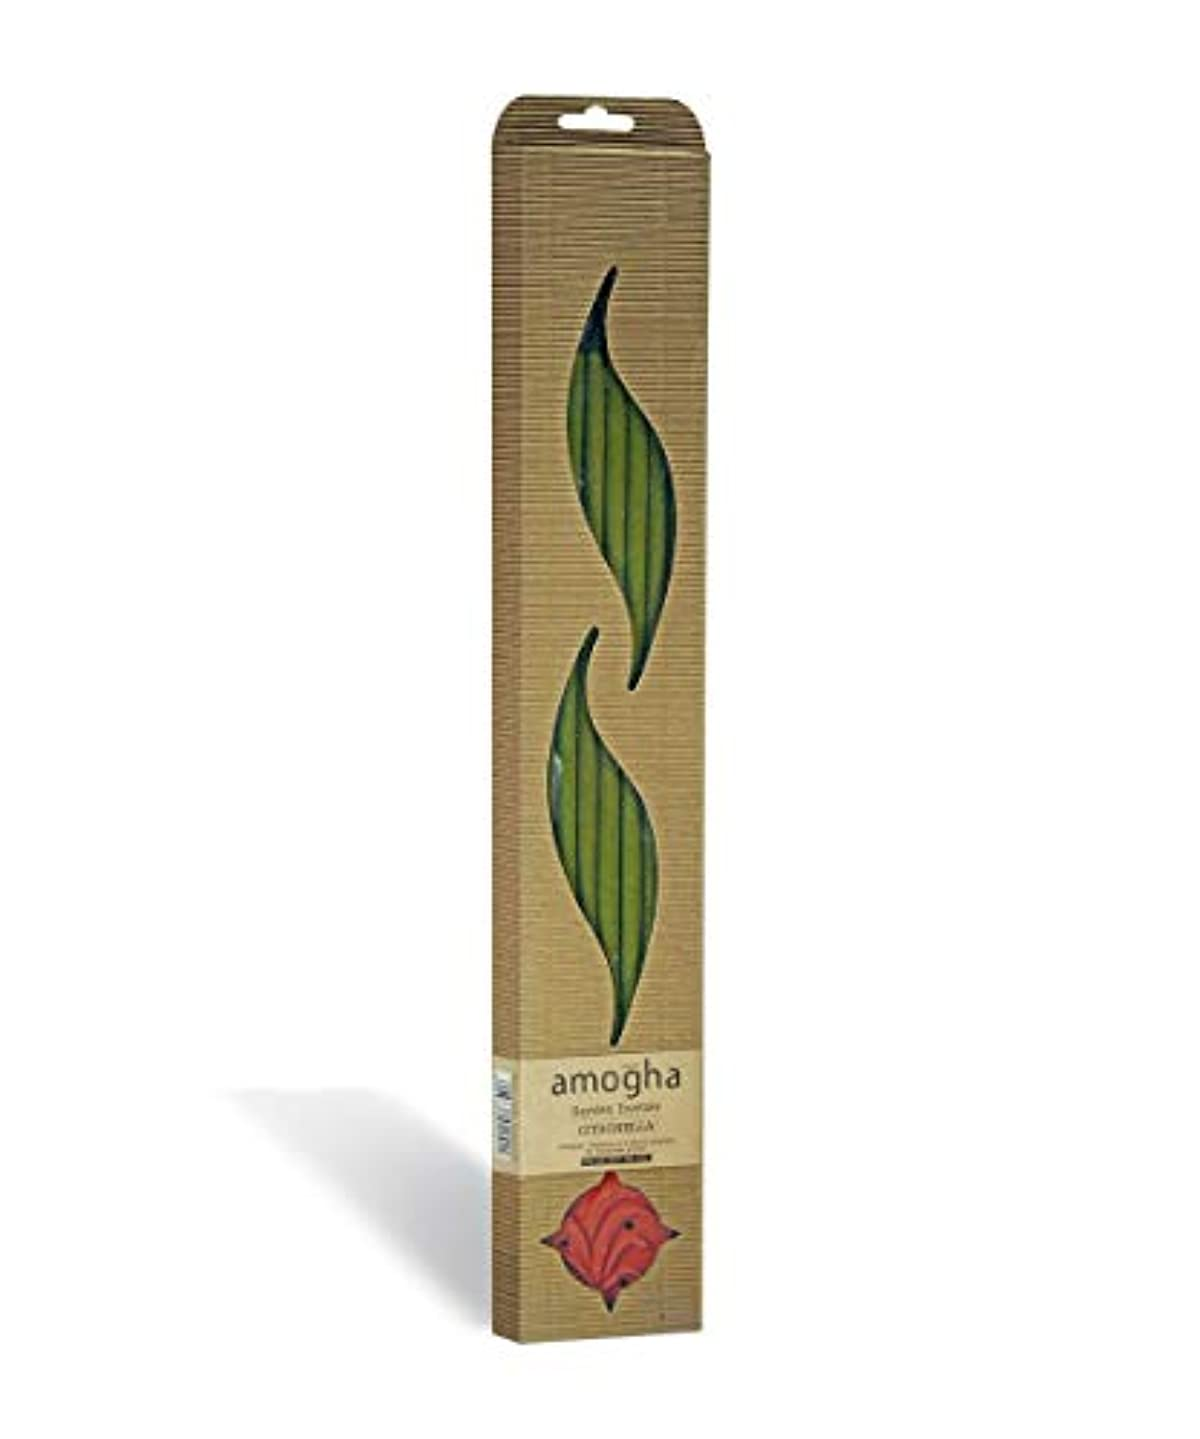 契約補う担保Iris Amogha Citronella Bamboo Incense Stick Set (8.8 cm x 2.5 cm x 53.3 cm, Green)